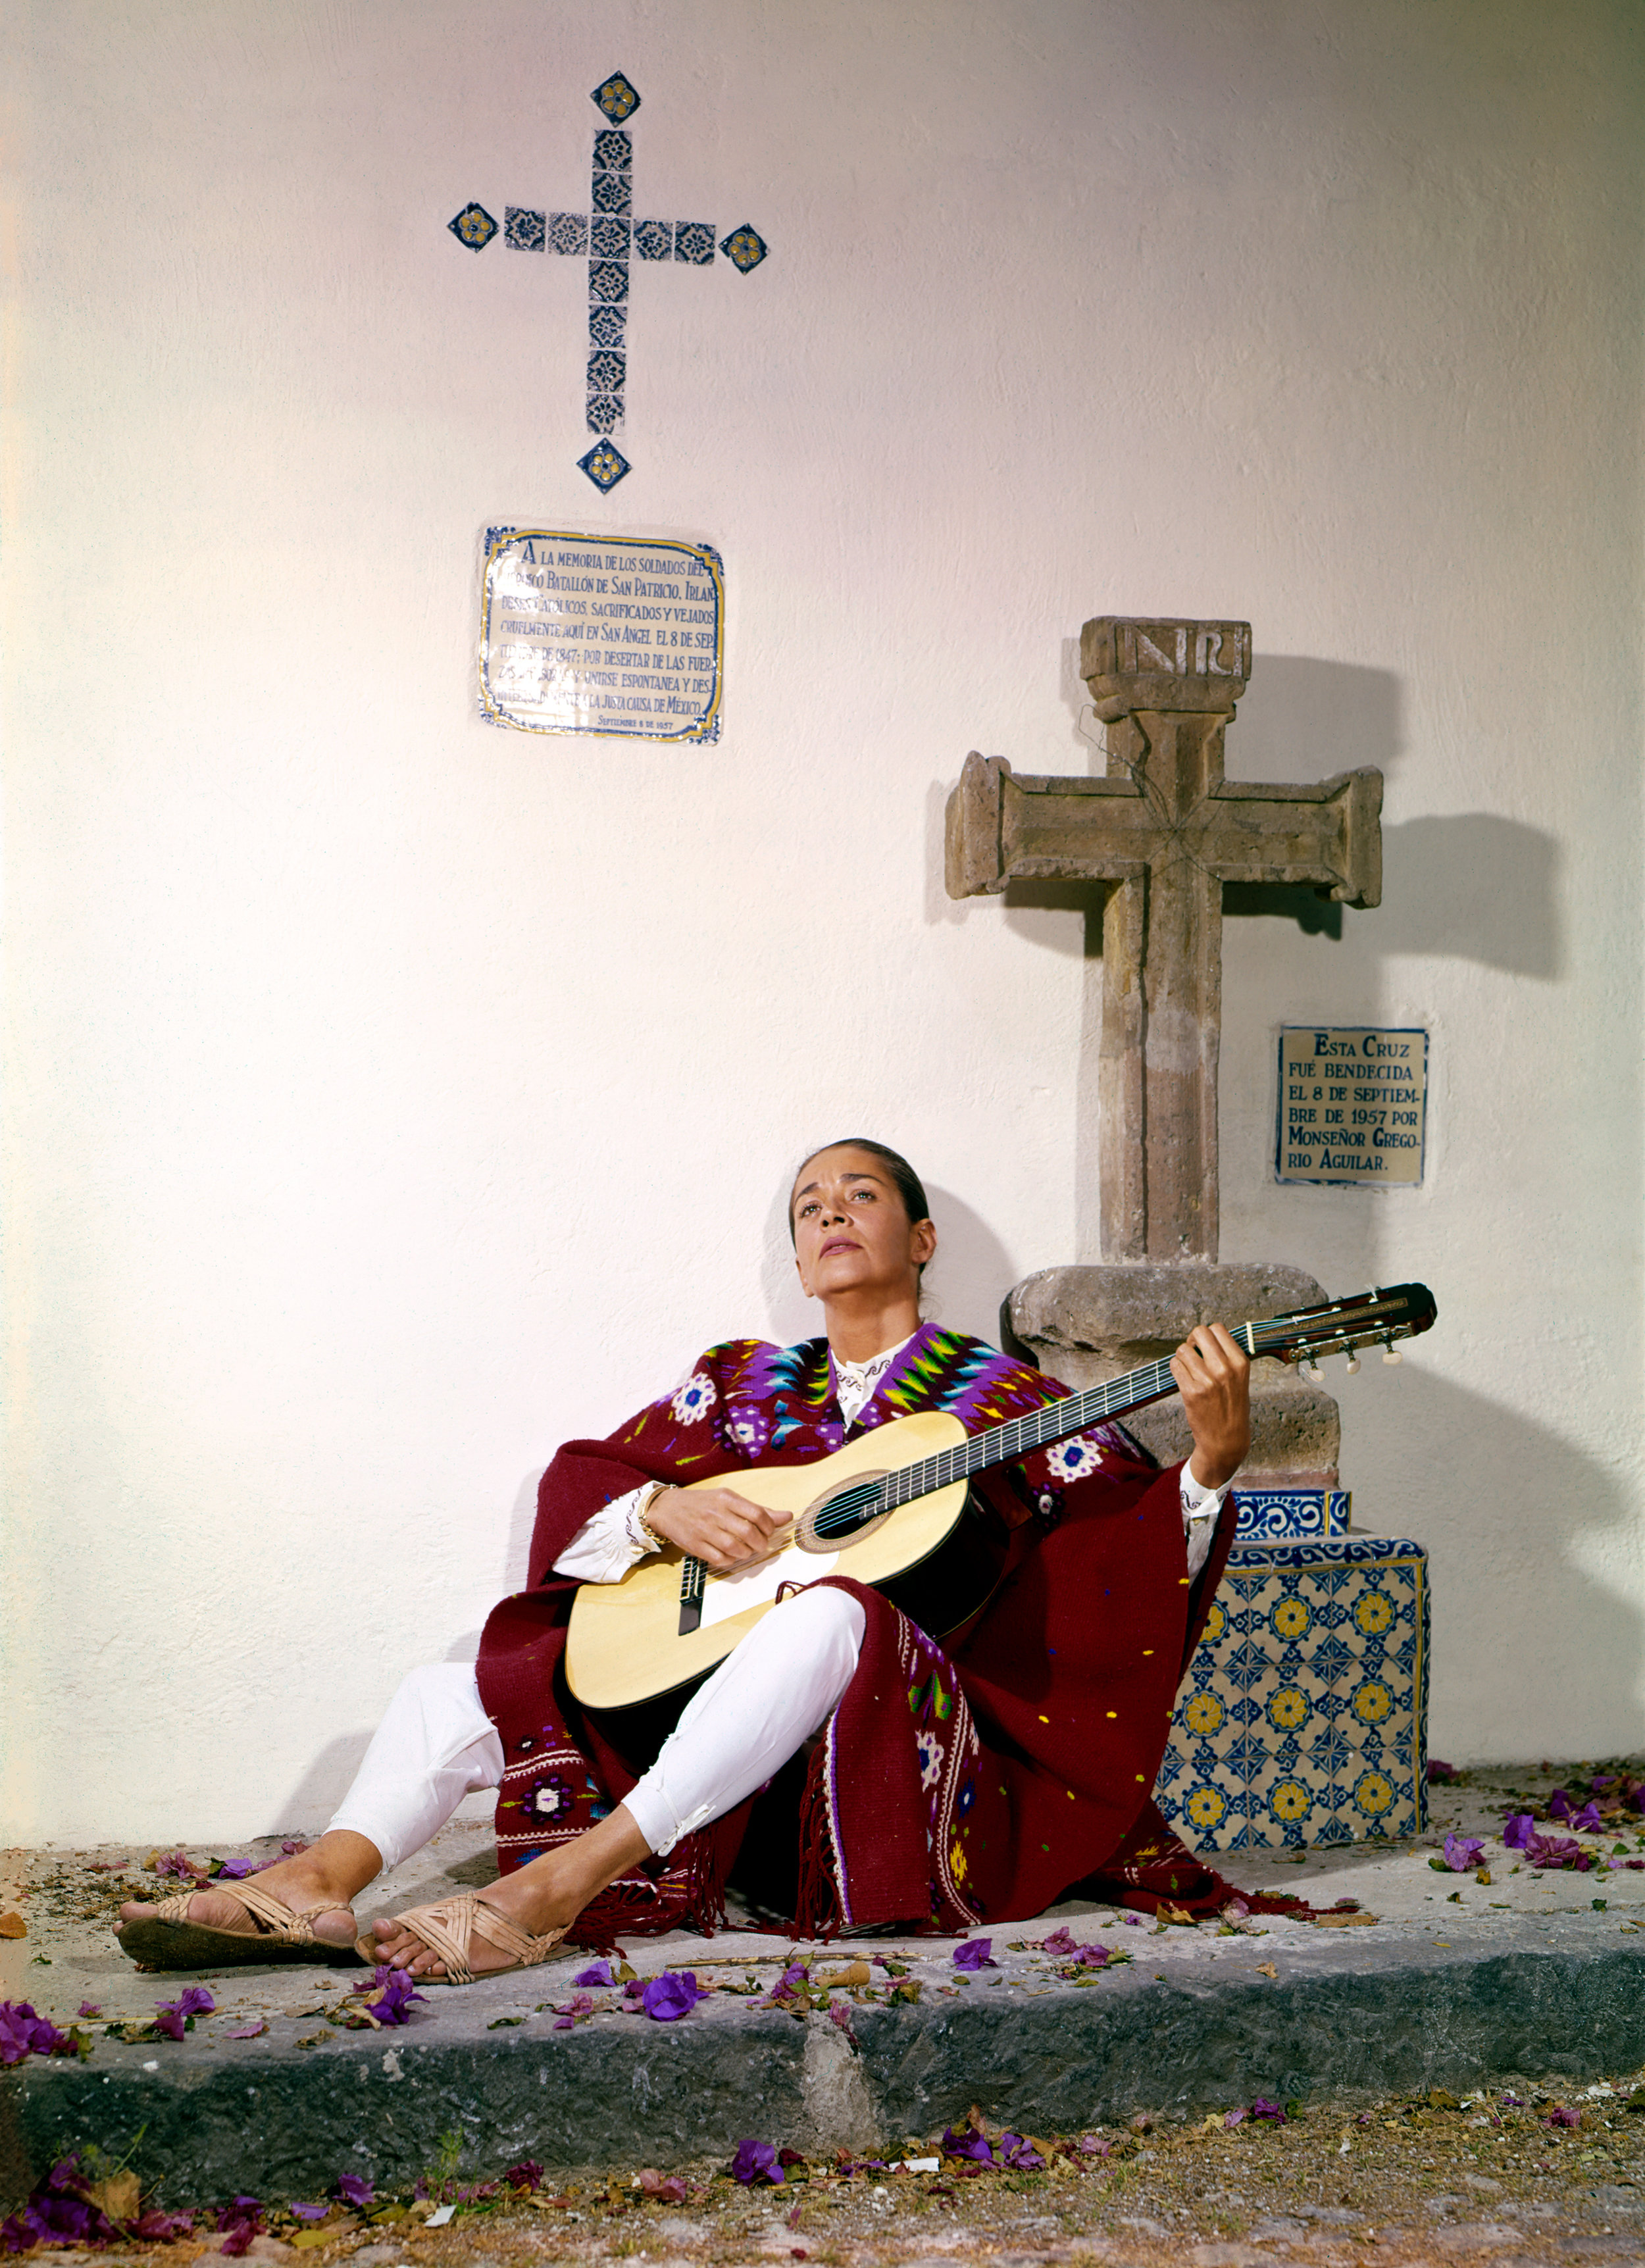 A young Chavela Vargas in Mexico.